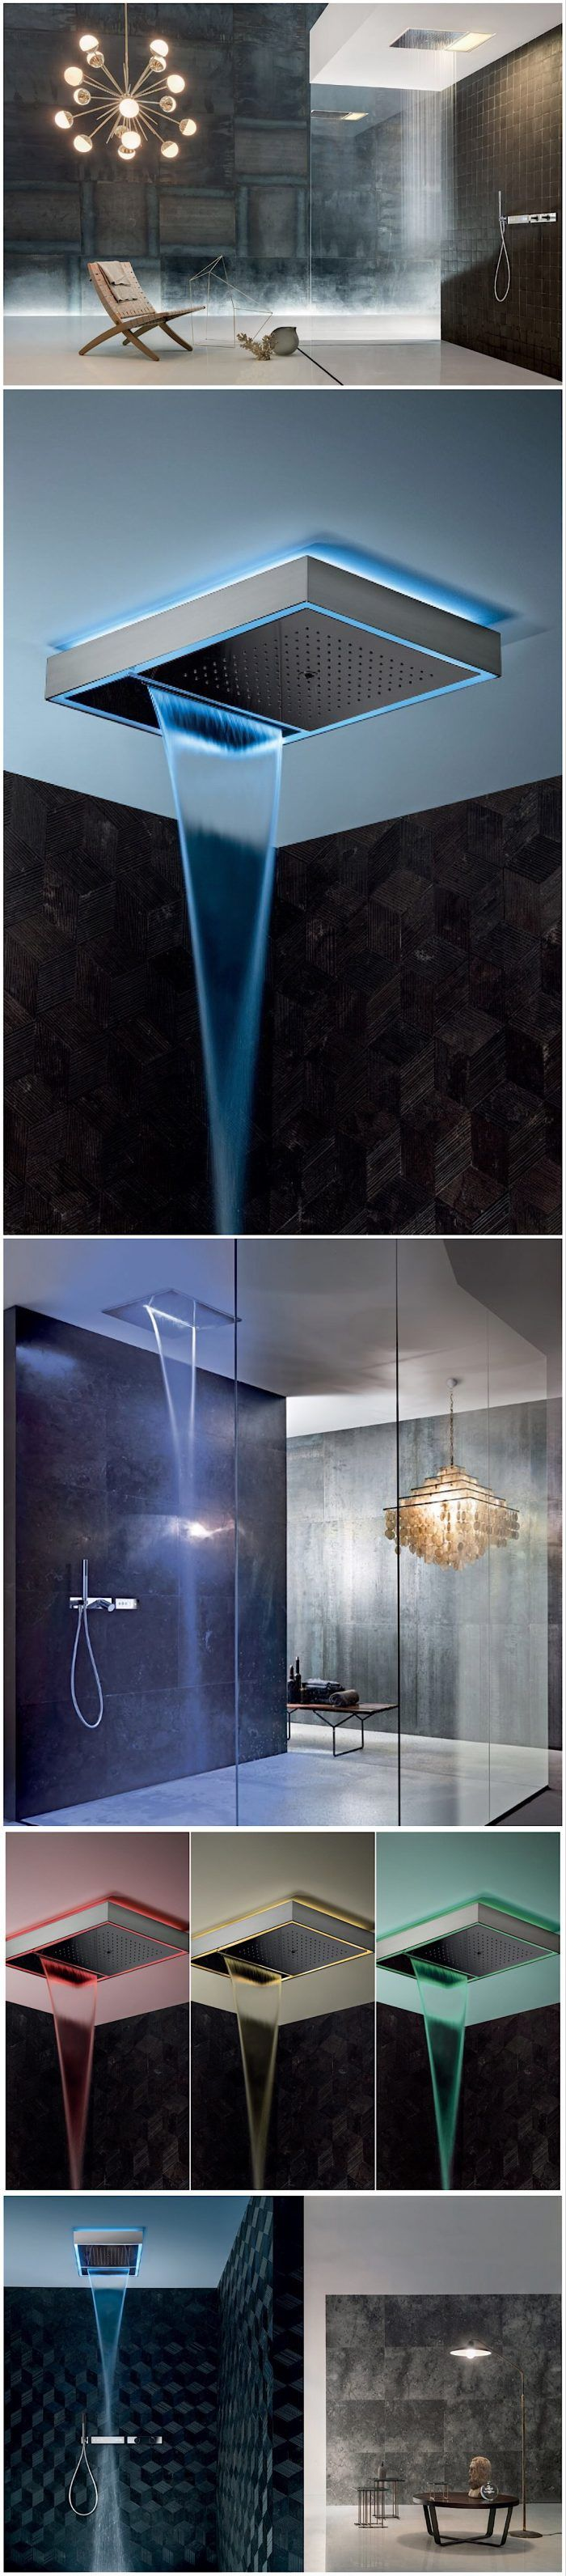 81 best Bath Shower Combo images on Pinterest | Bathroom ...